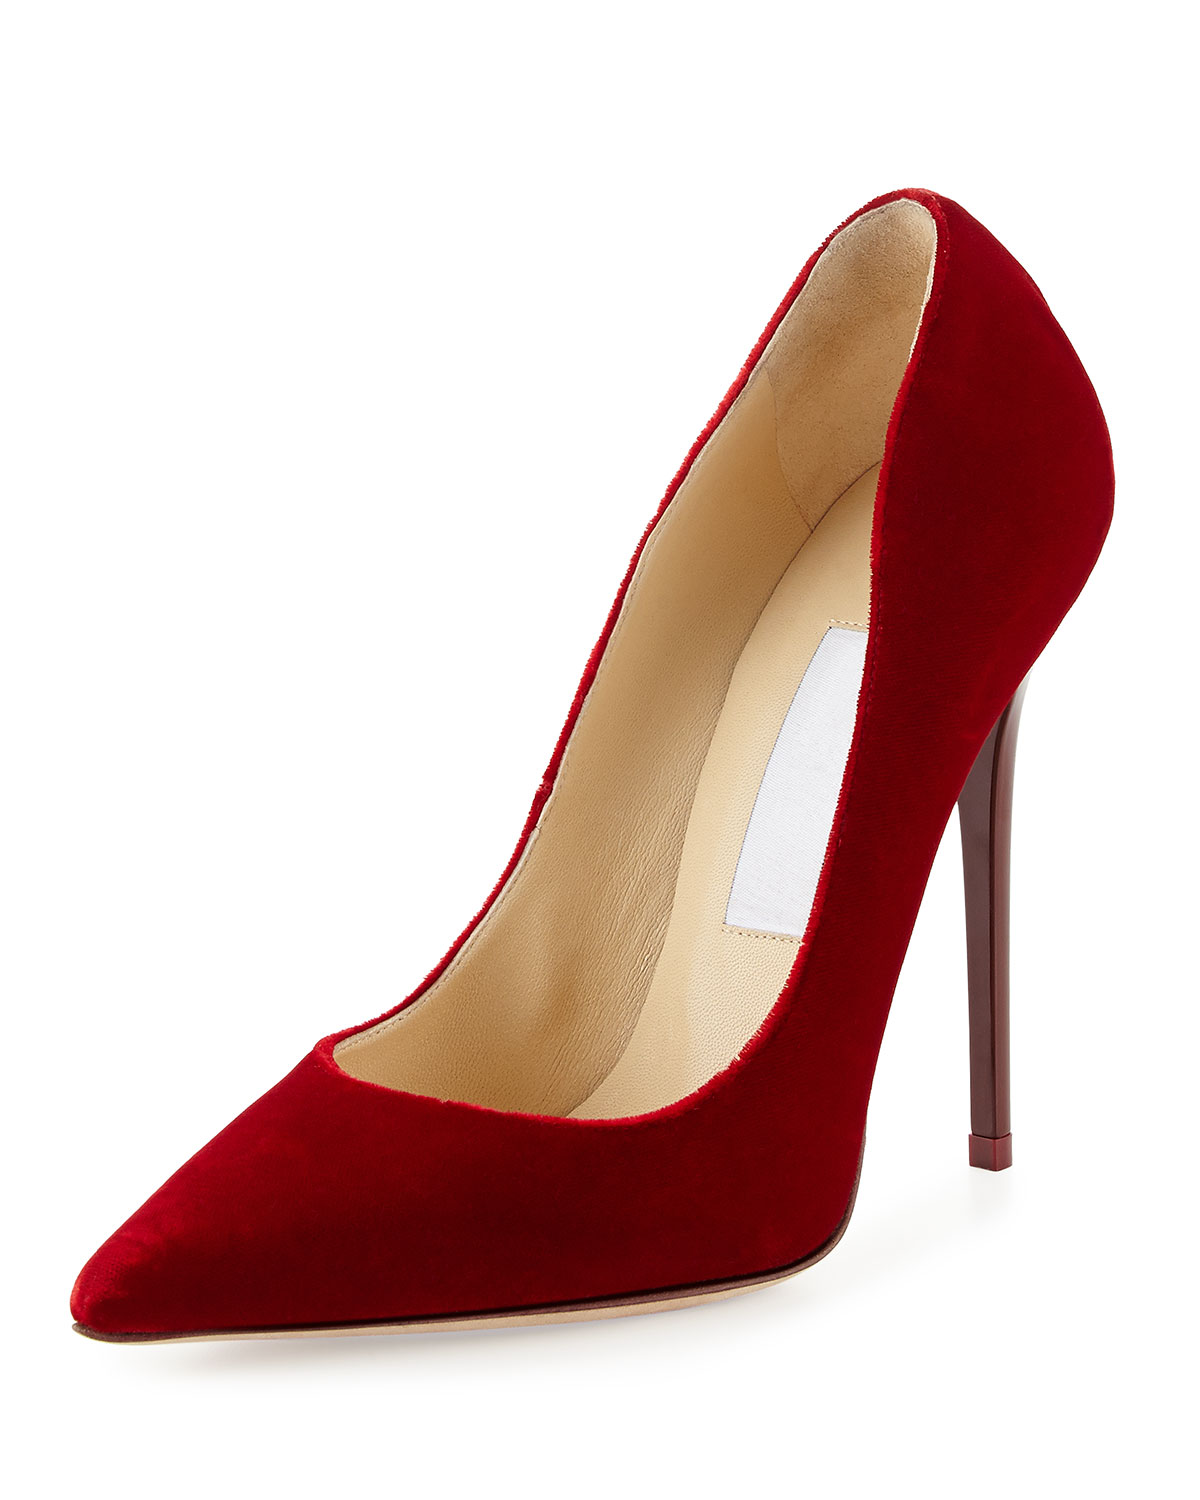 94350e017737 Jimmy Choo Anouk Velvet High-Heel Pump